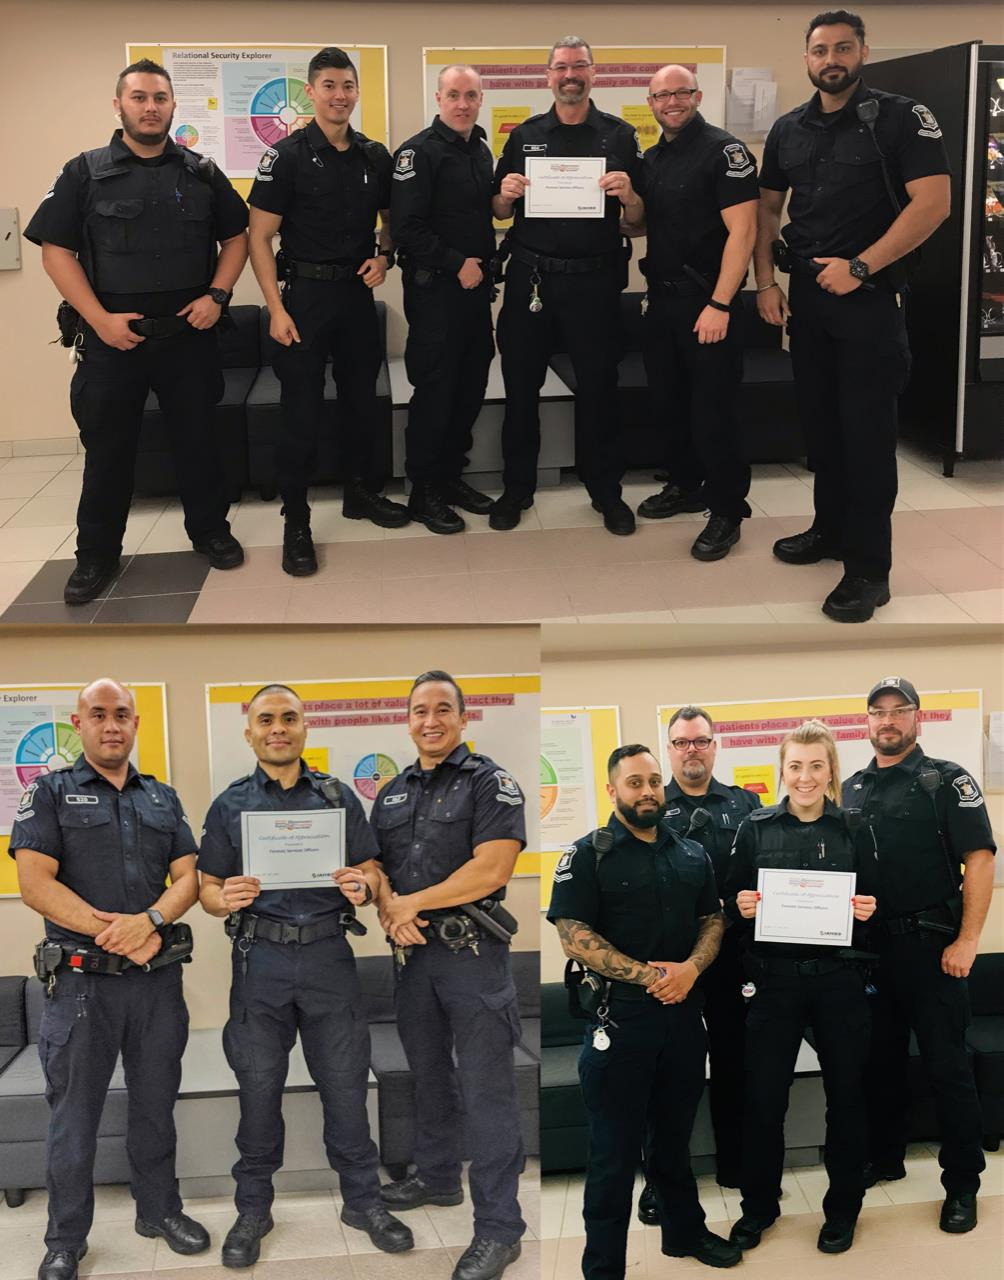 Healthcare Security And Safety Week Recognizes Officers Passion Patience And Professionalism